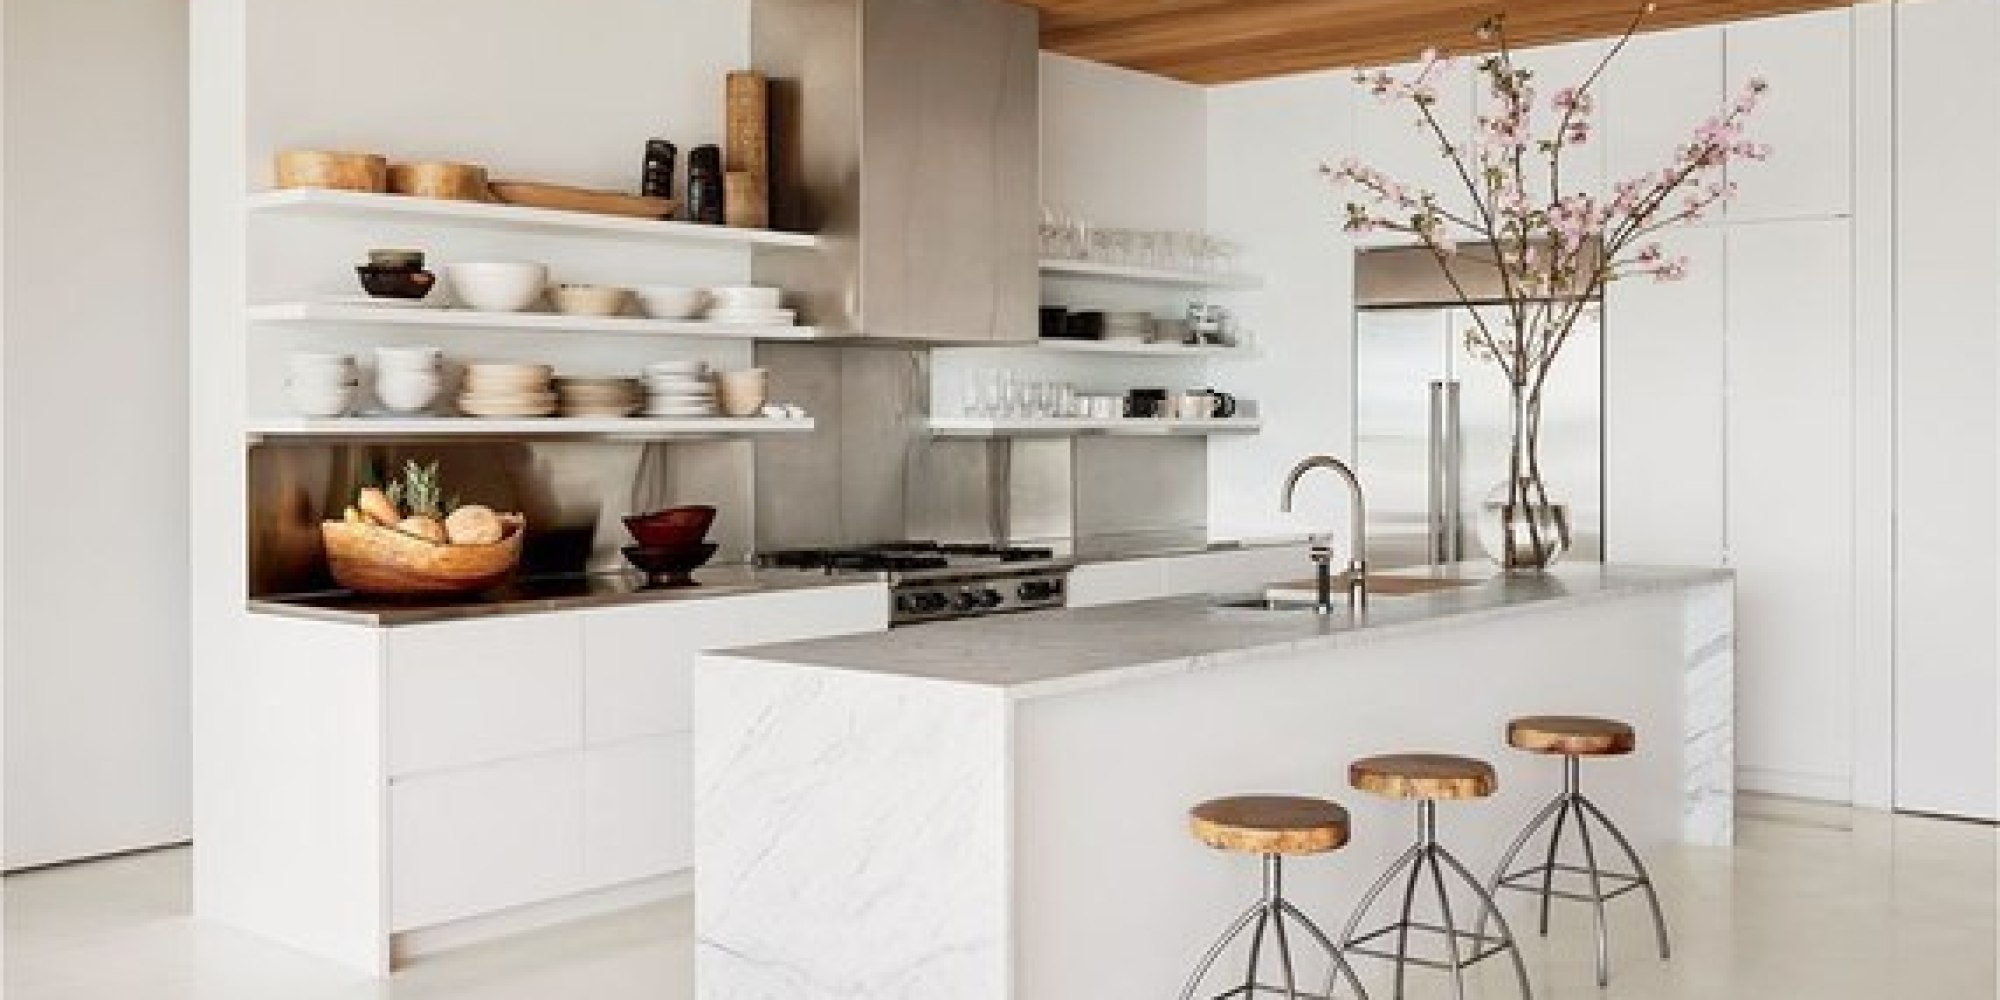 8 Ways To Have Open Shelving In Your Kitchen | HuffPost